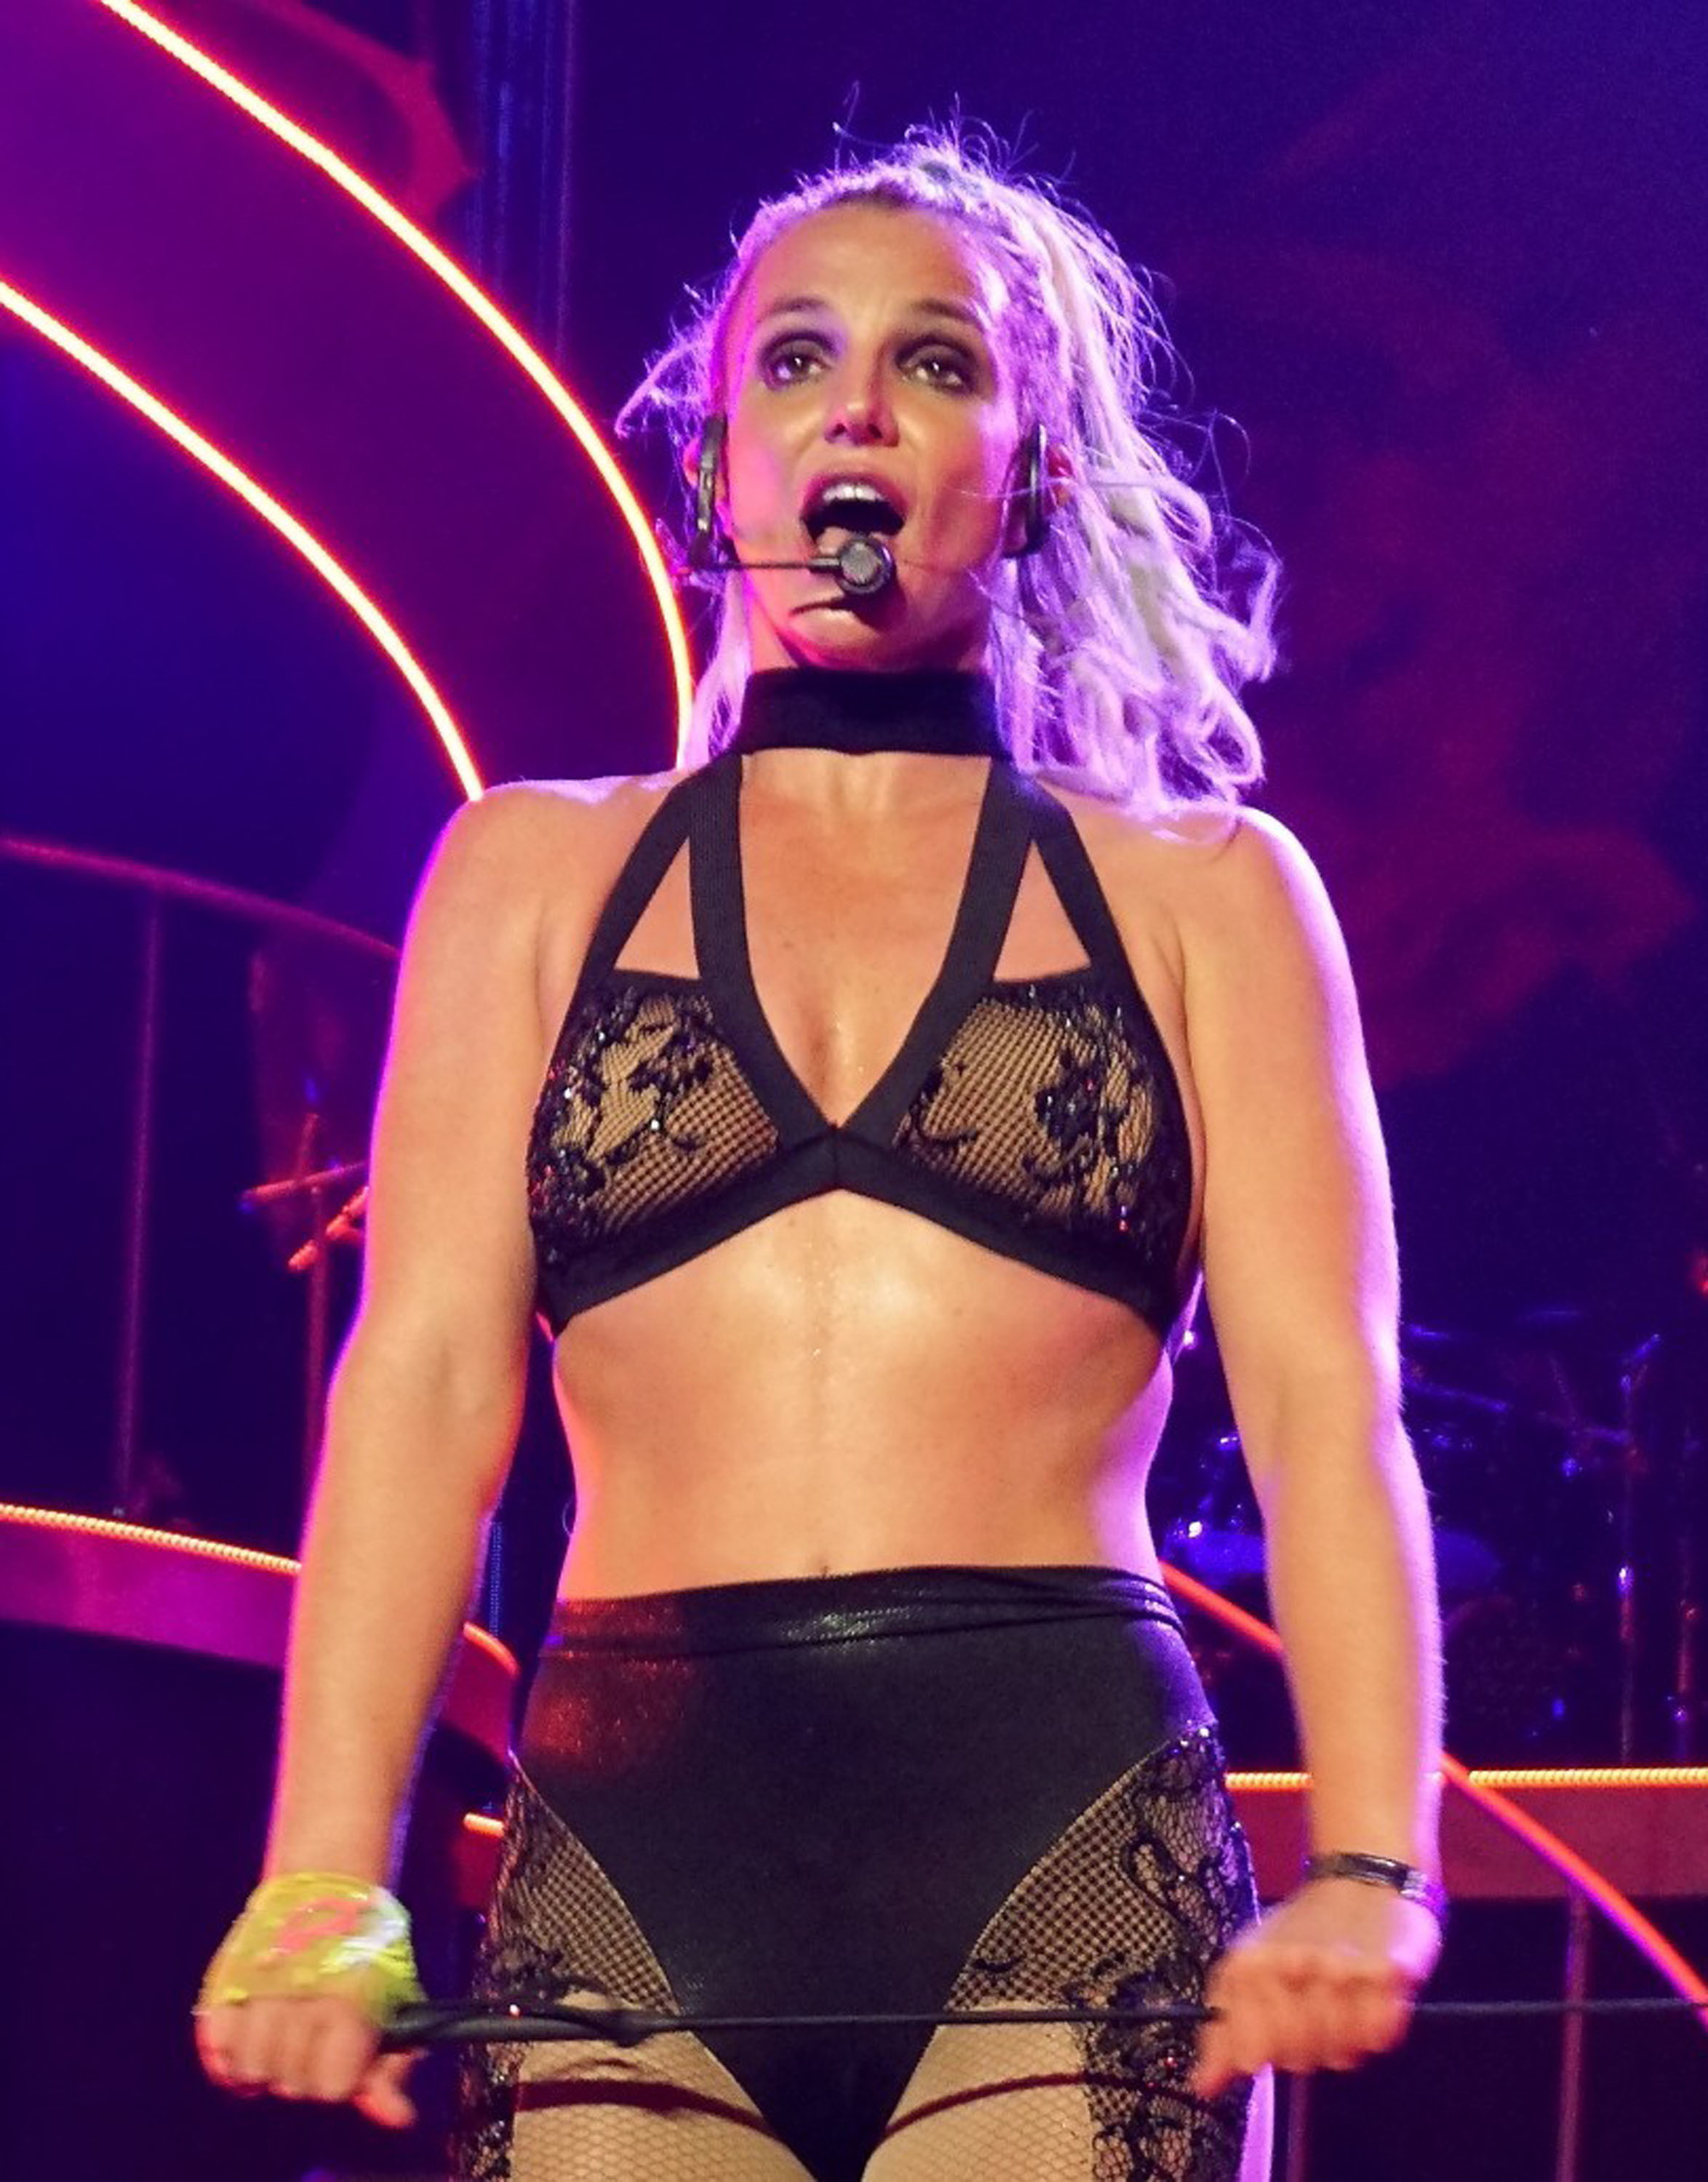 Britney Spears wants 'a hot nerd'